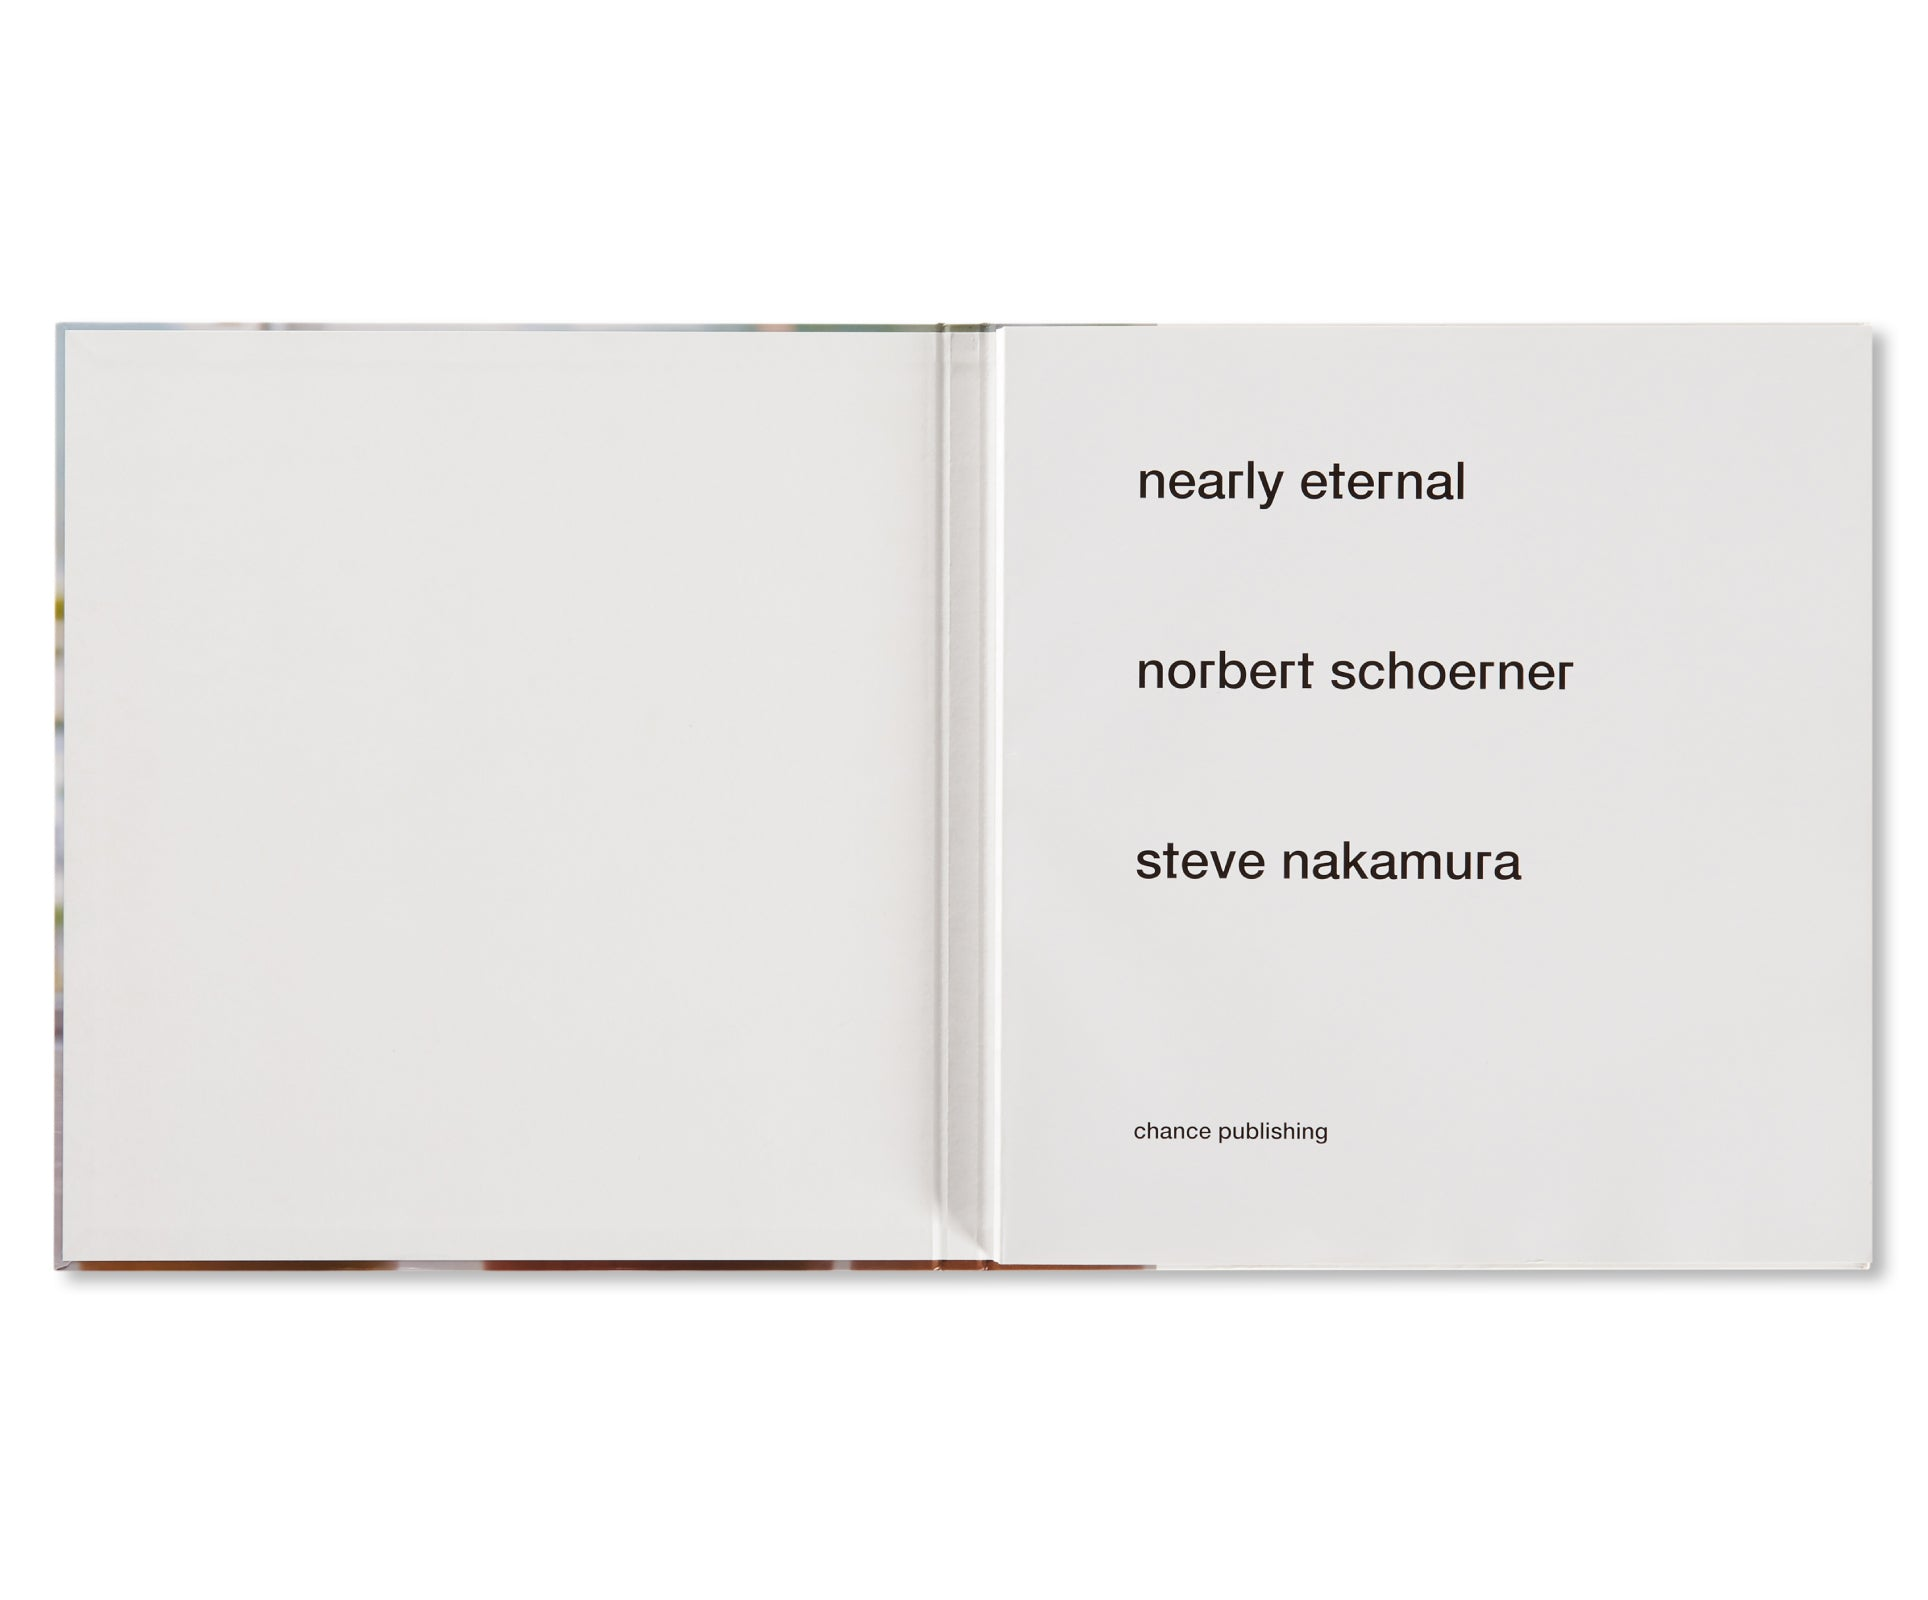 NEARLY ETERNAL by Norbert Schoerner & Steve Nakamura [SECOND EDITION / SIGNED]